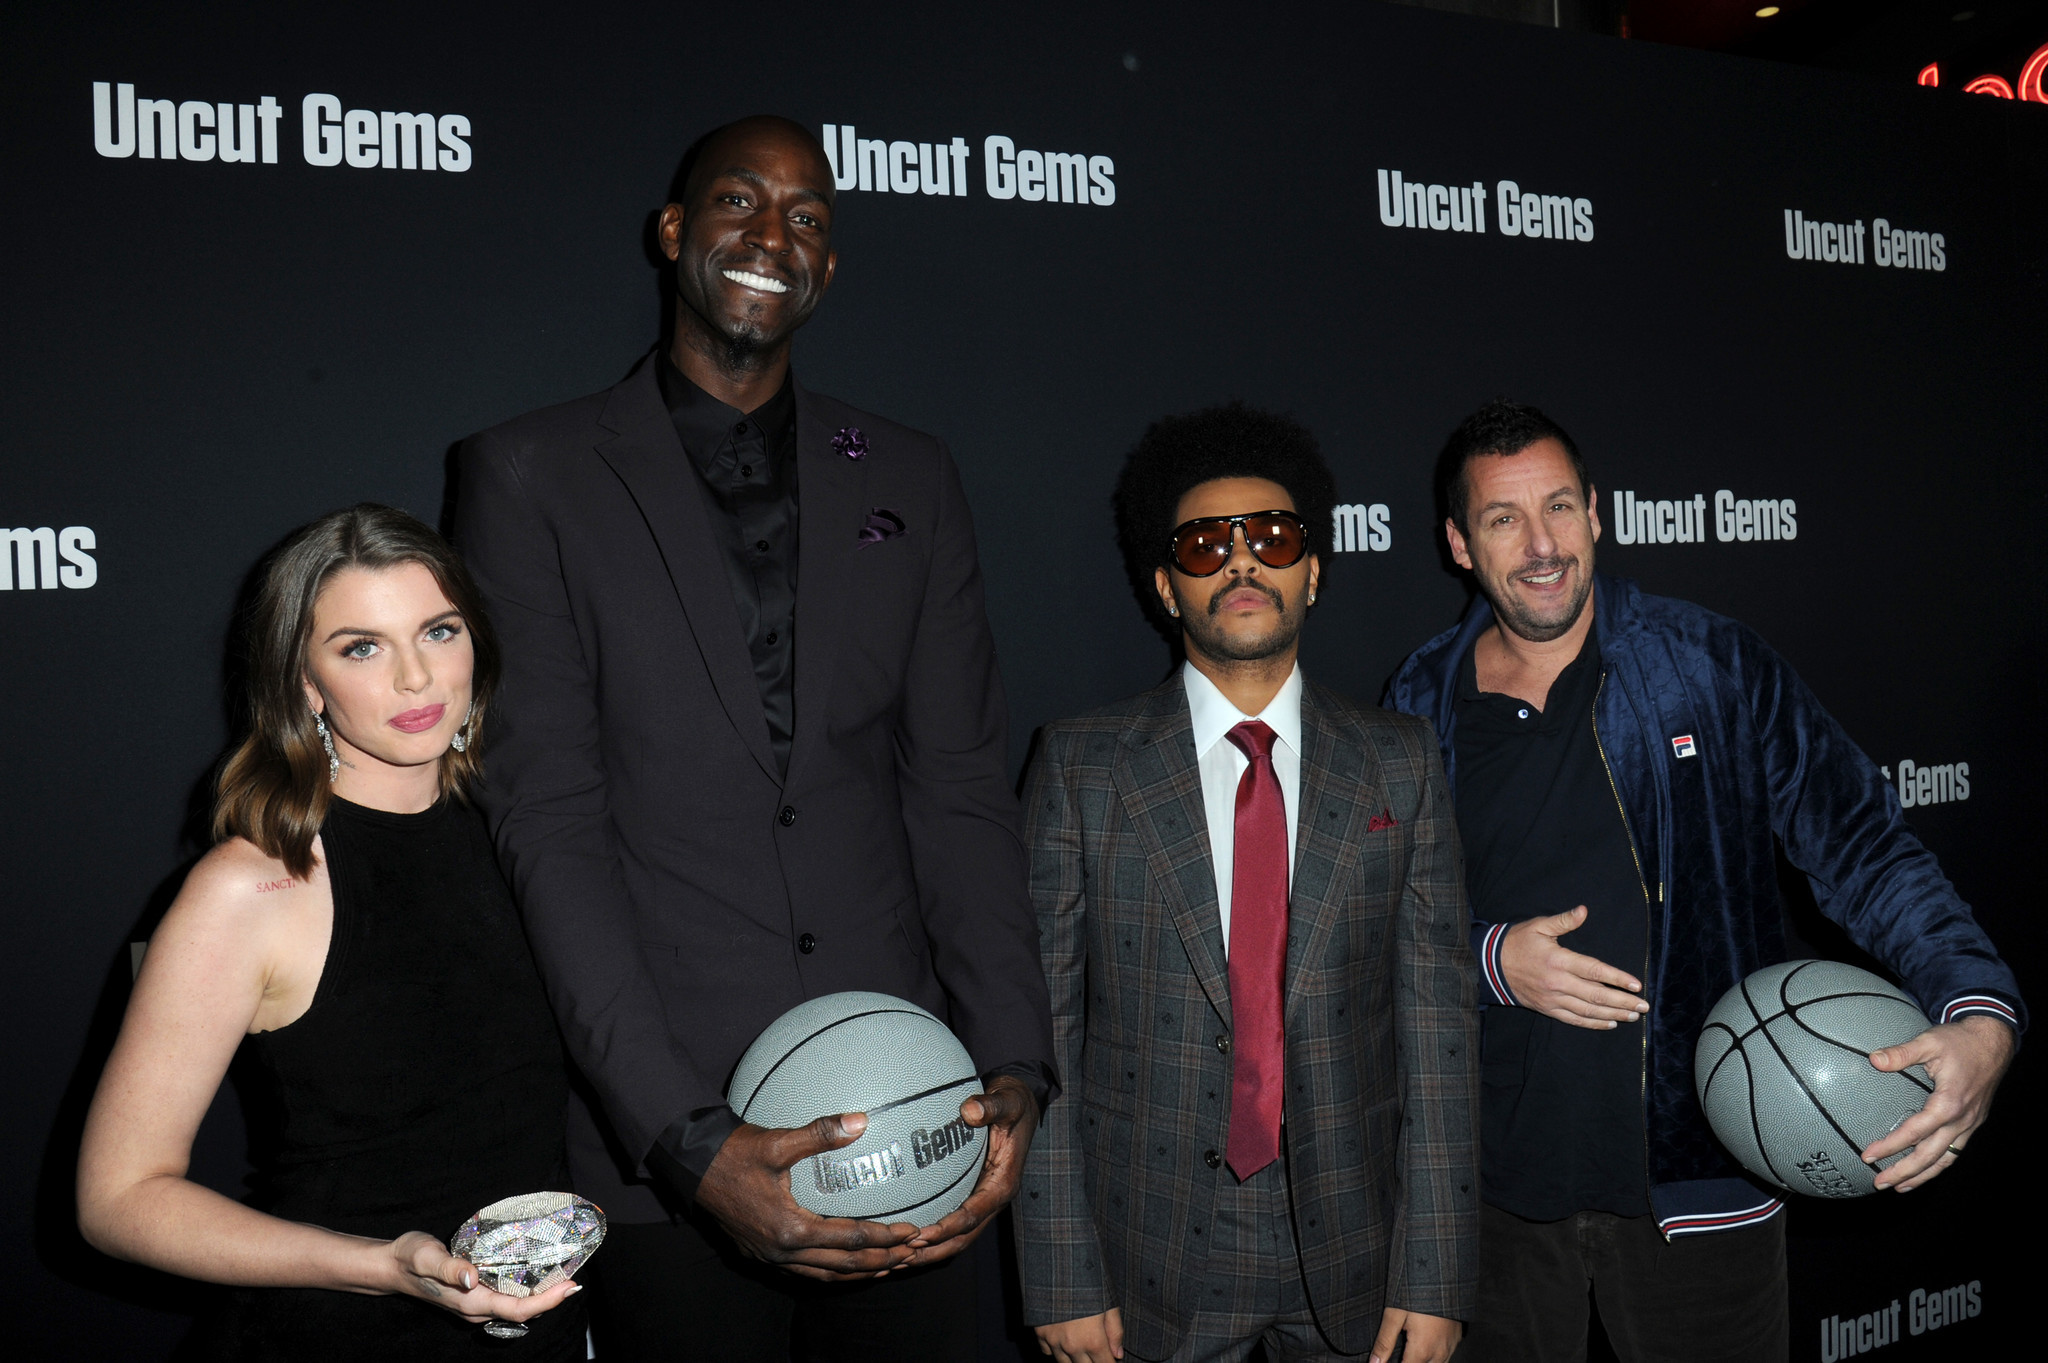 Kevin Garnett, who is no stranger to acting, is a real 'Gem' in new Adam Sandler pic